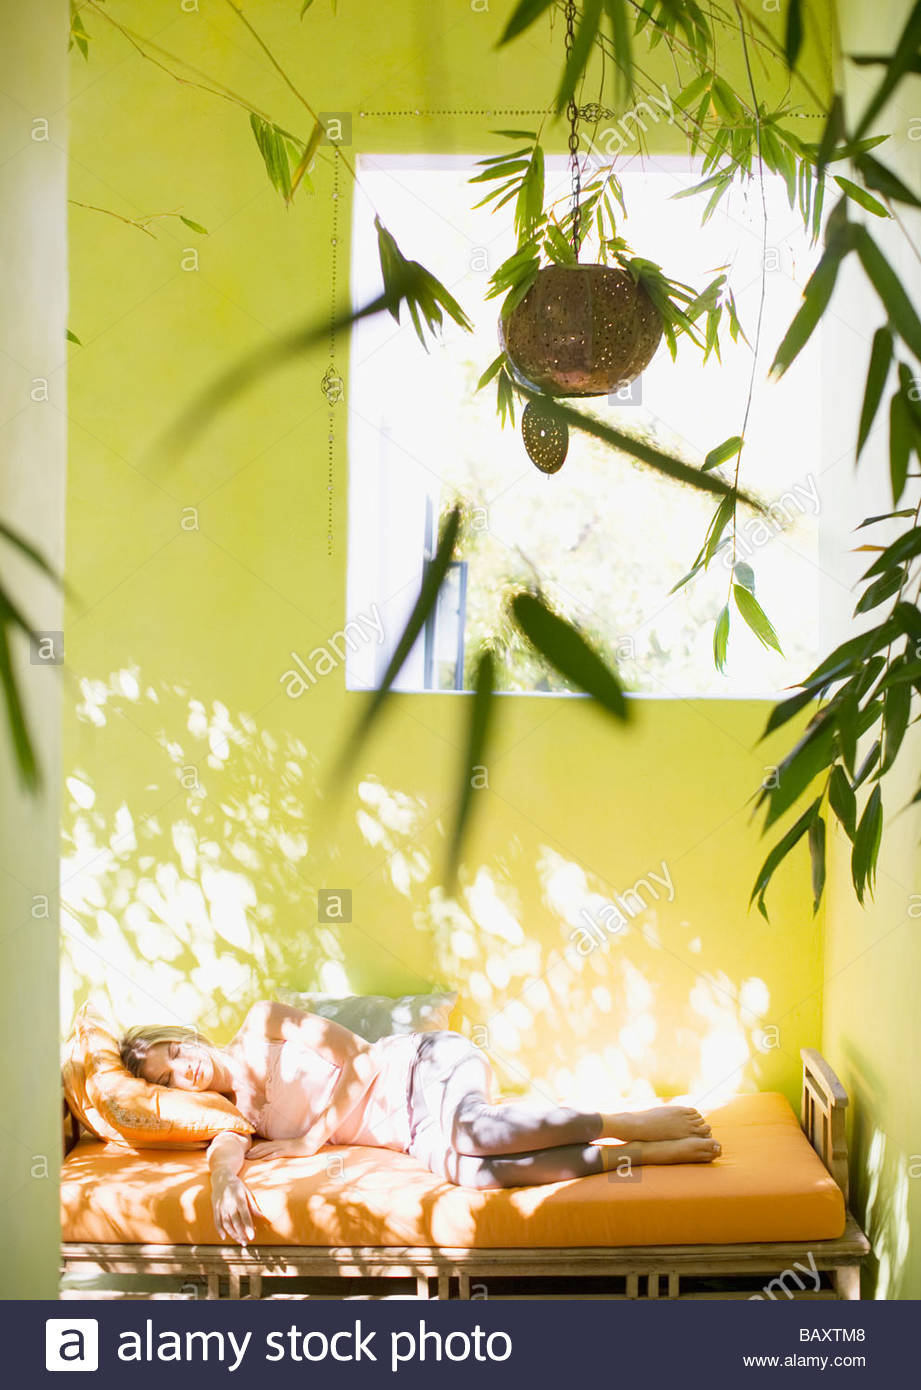 Woman sleeping on daybed in daytime - Stock Image